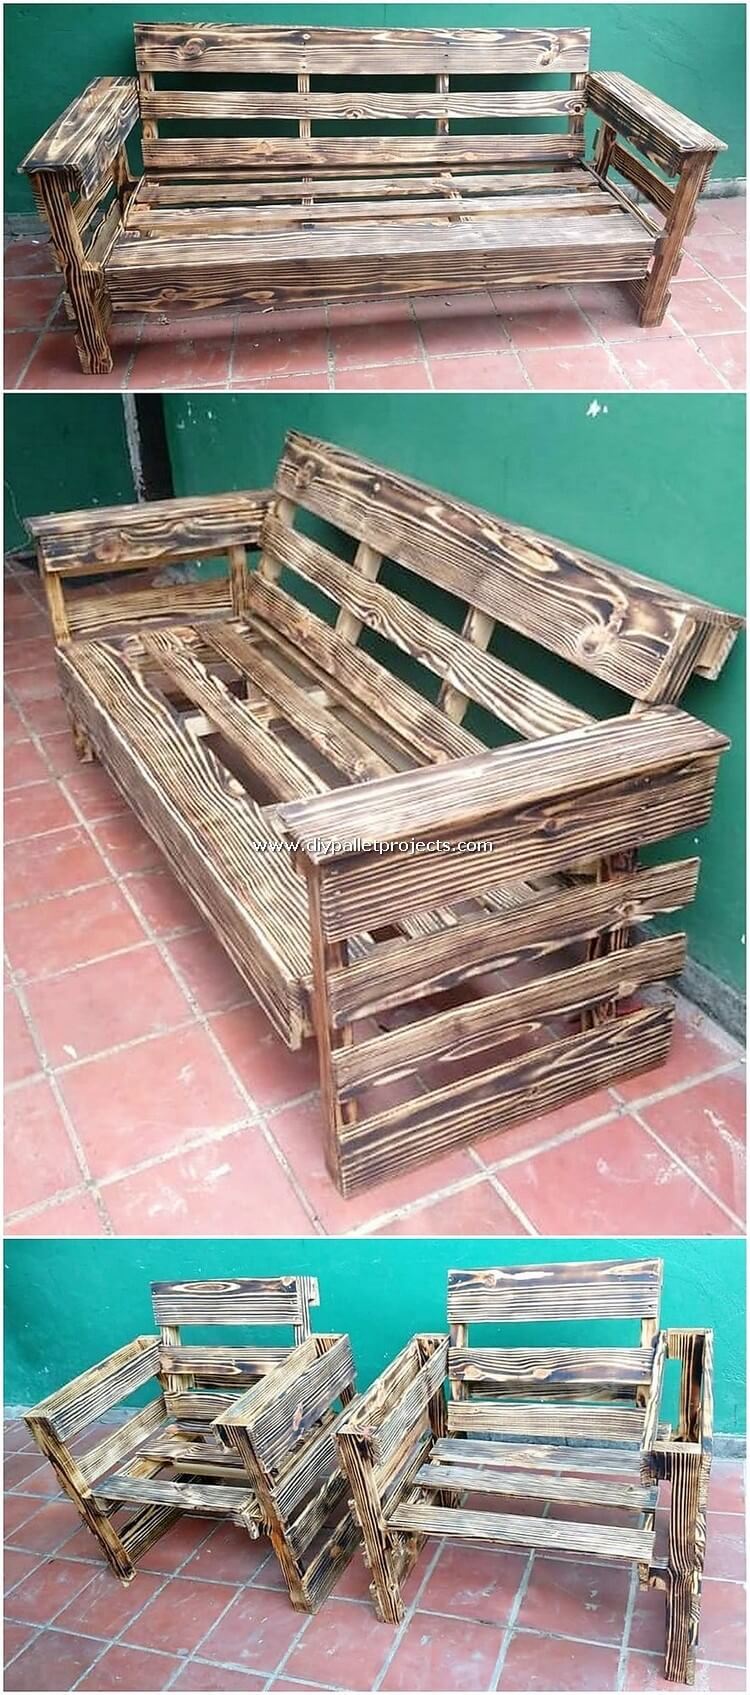 Pallet Bench and Chairs